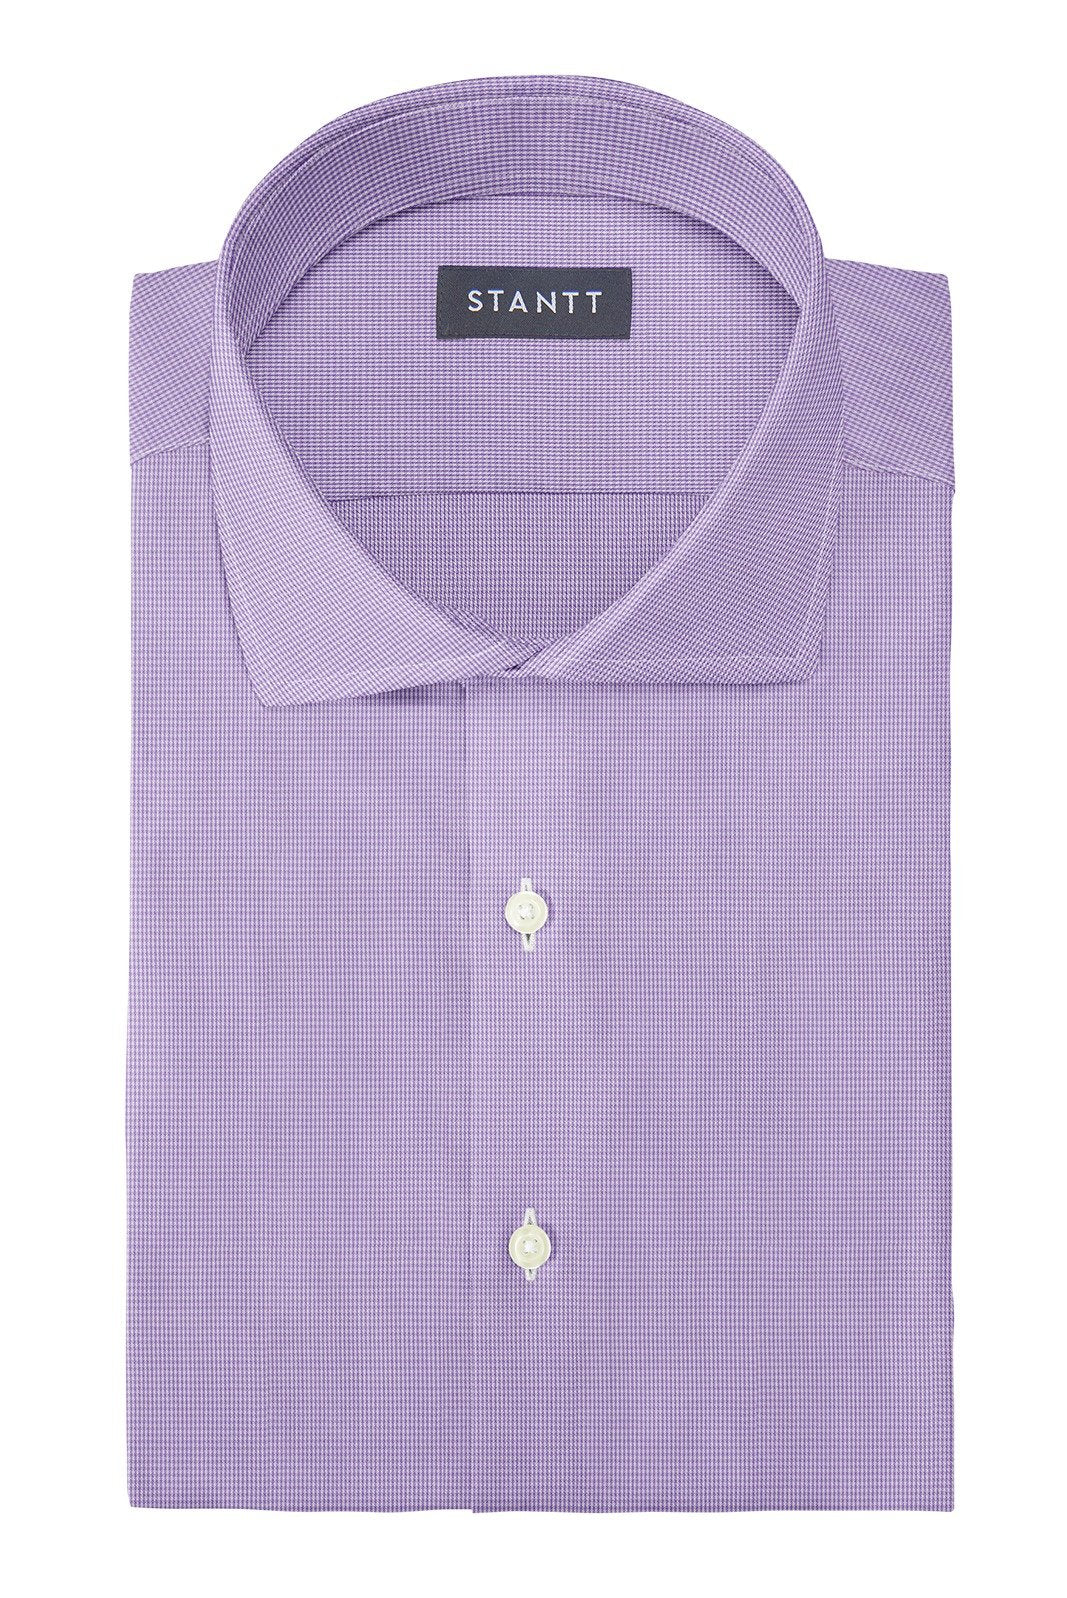 Wrinkle-Resistant Purple Micro Gingham: Cutaway Collar, French Cuff